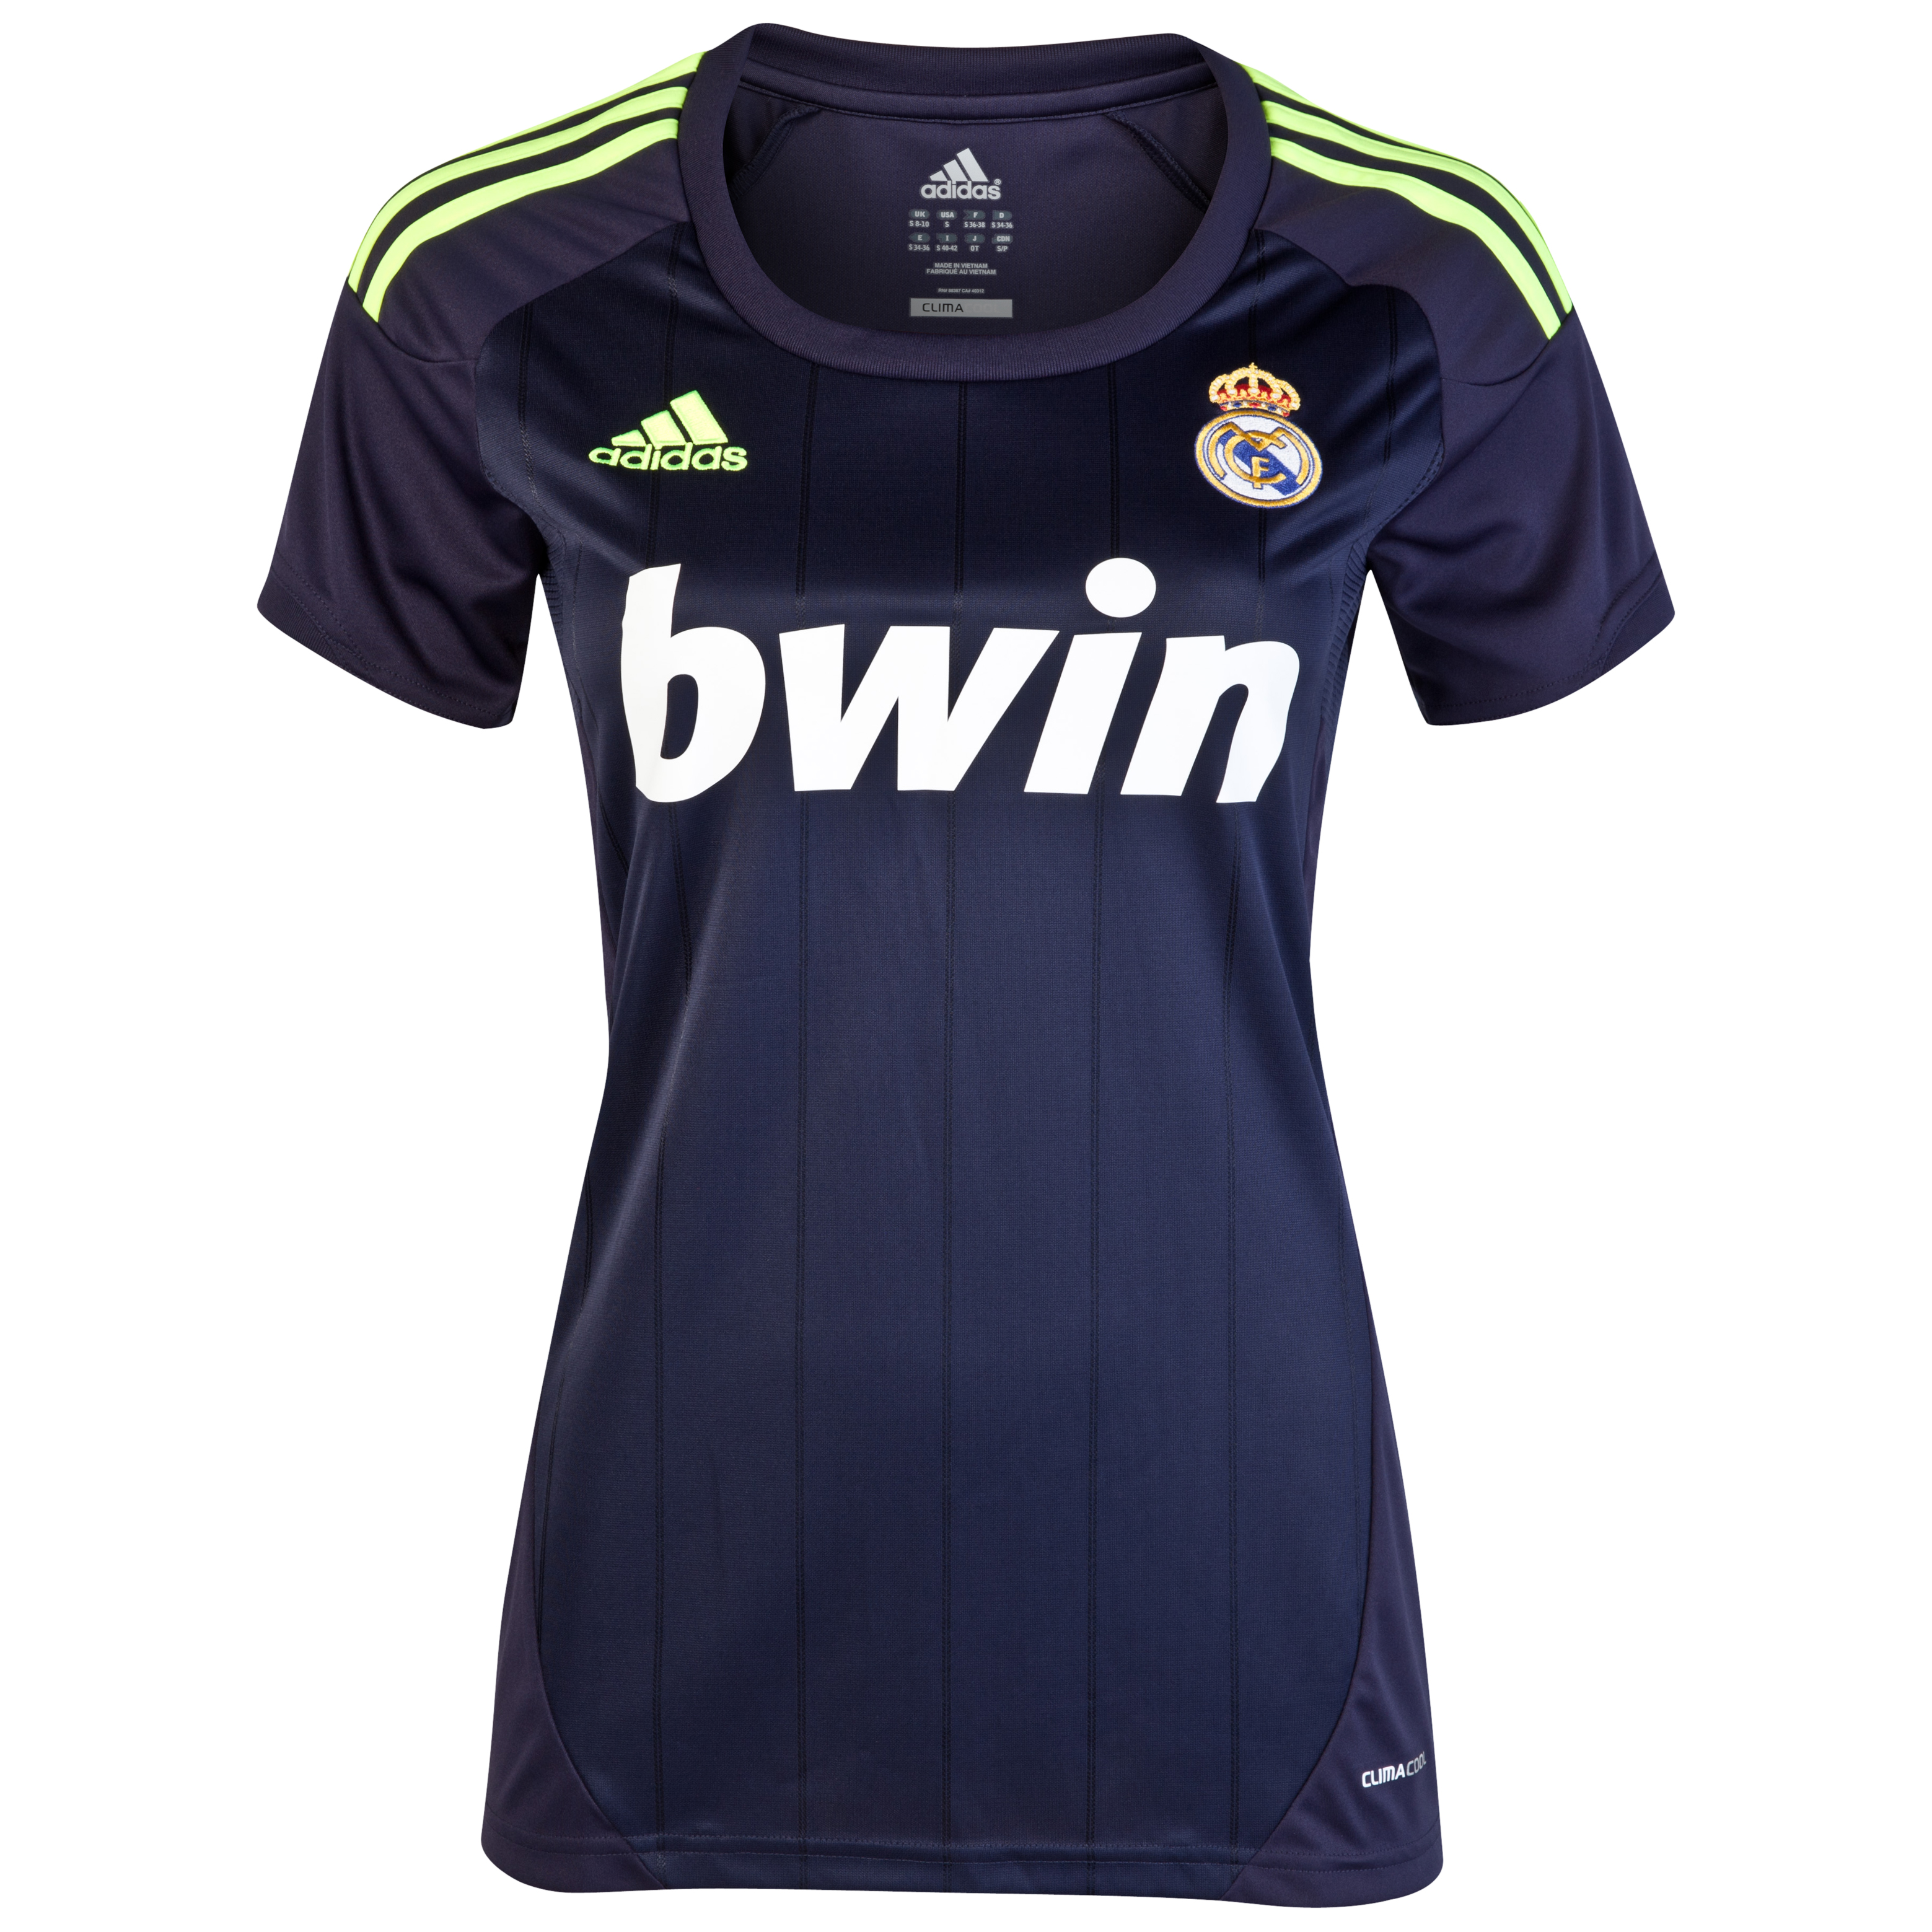 Real Madrid Away Shirt 2012/13 - Womens